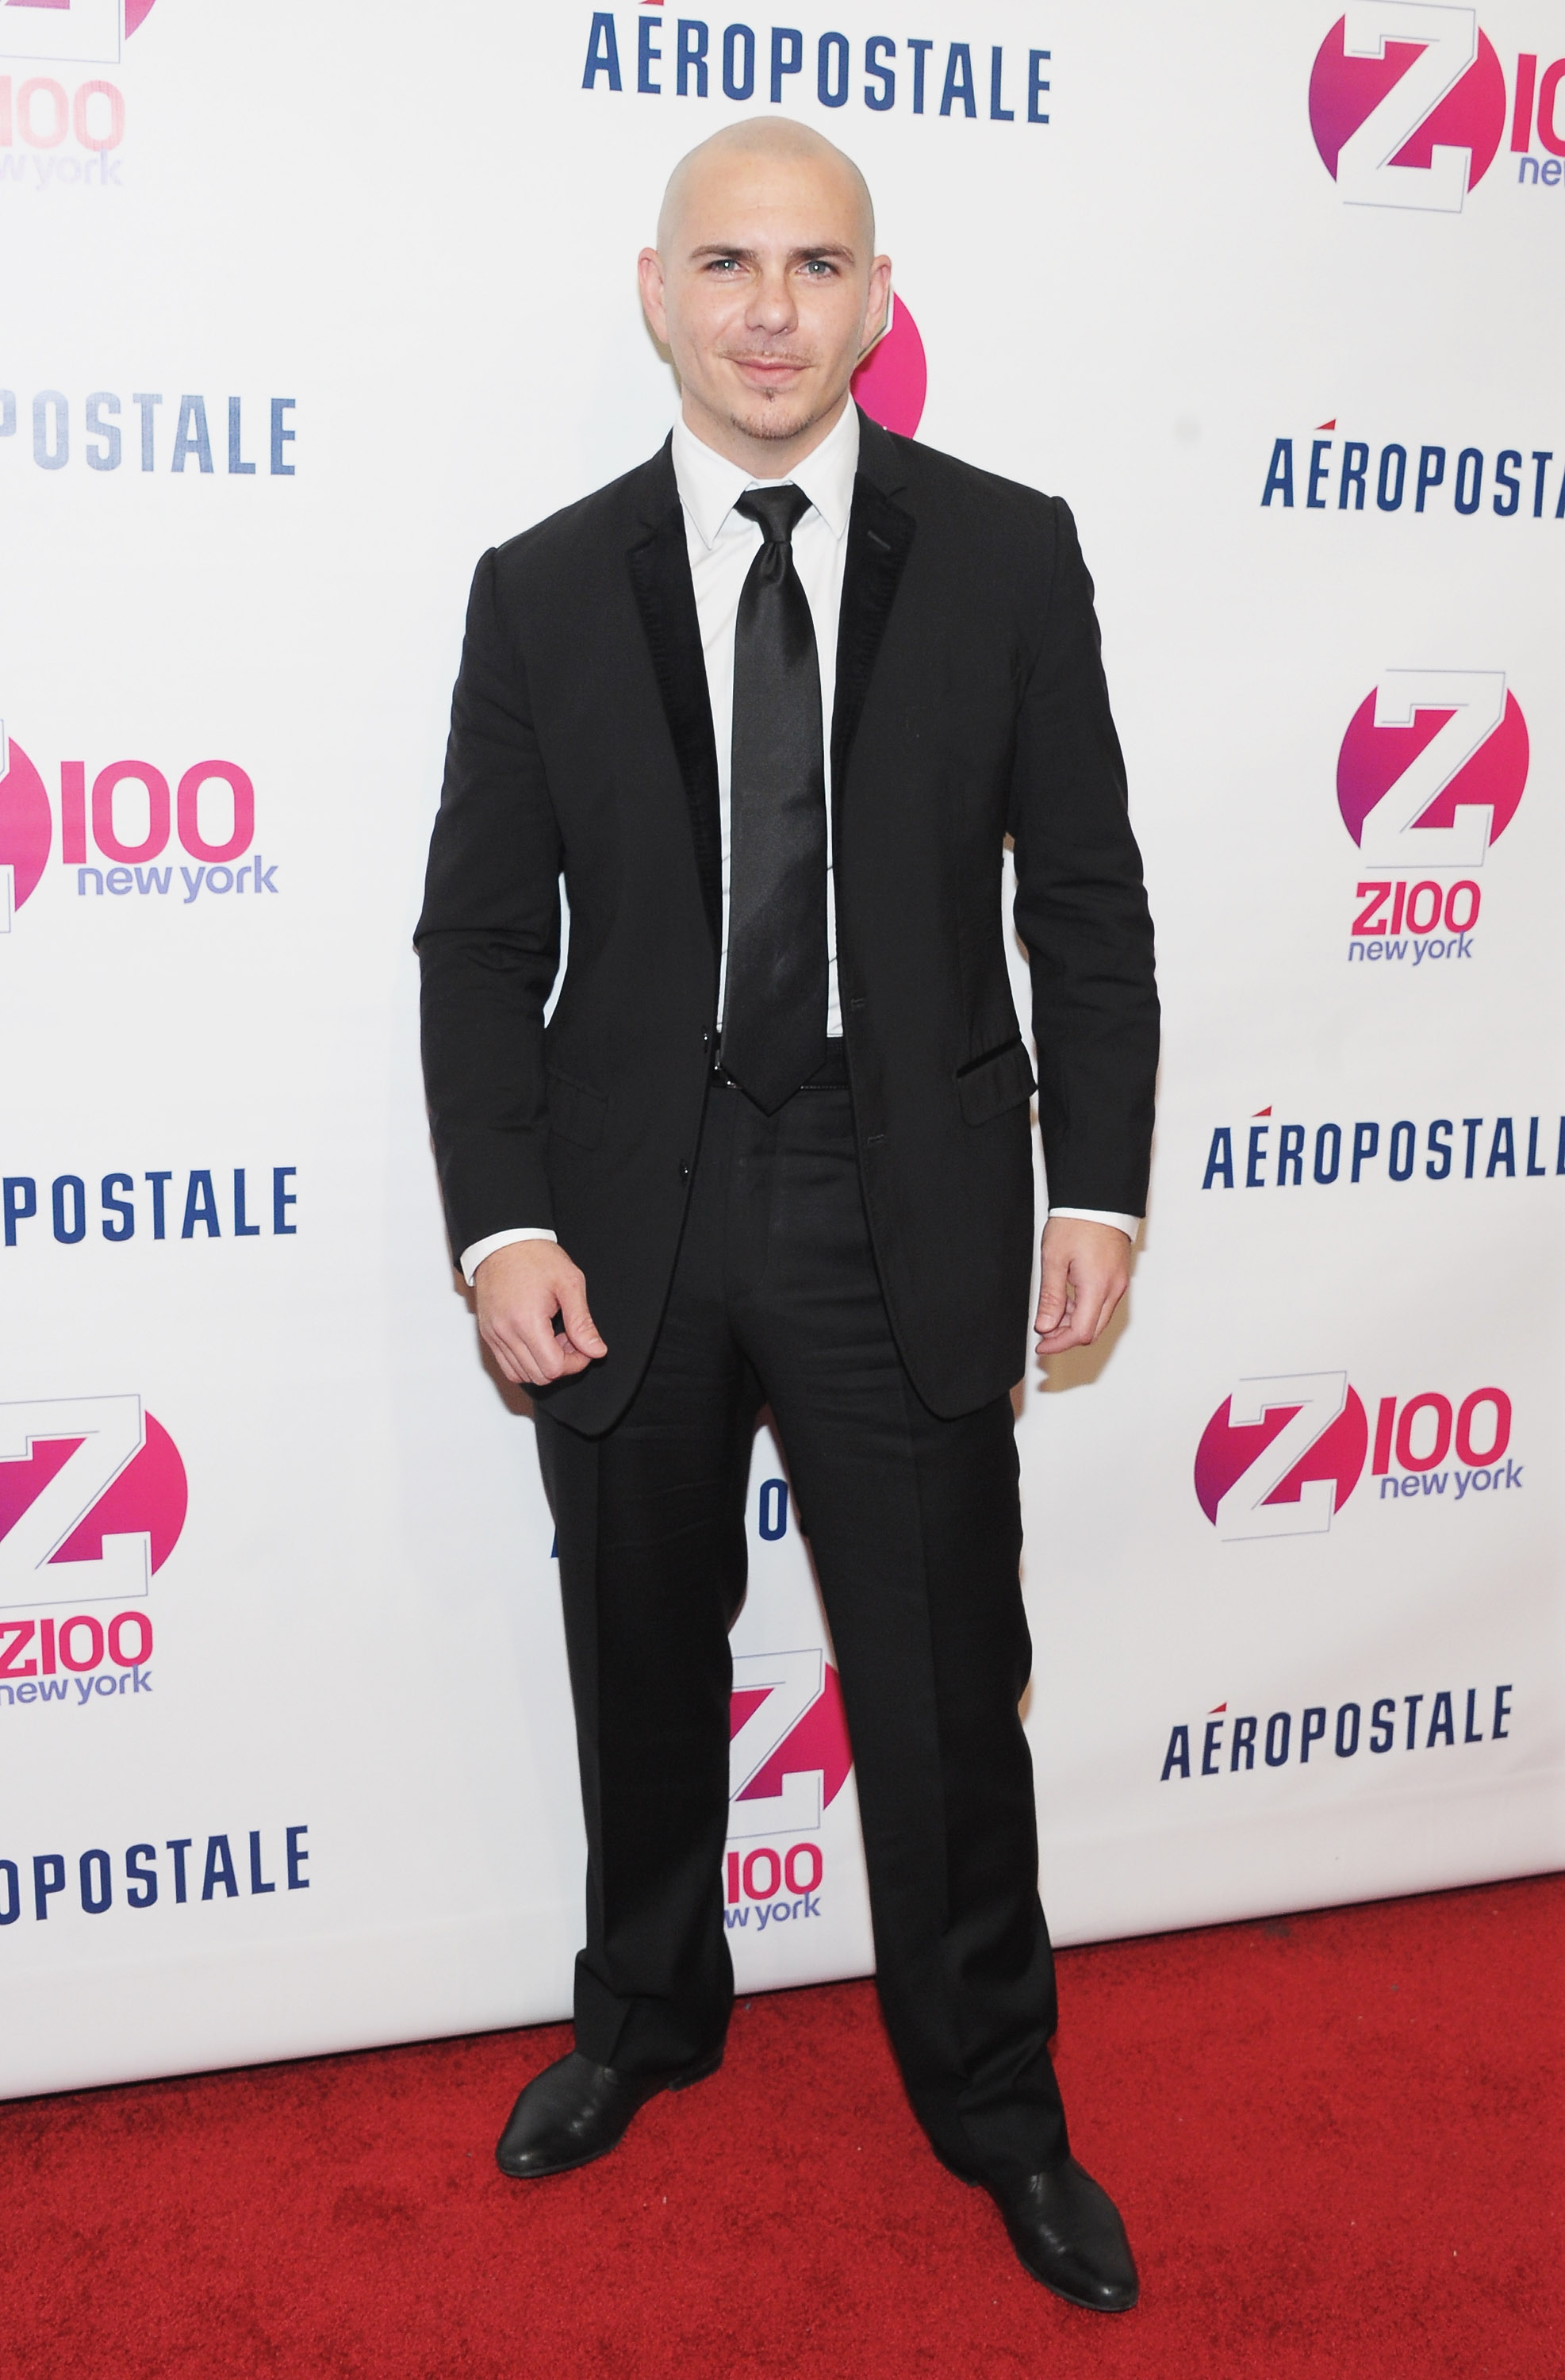 NEW YORK, NY - DECEMBER 09:  Singer Pitbull attends Z100's Jingle Ball 2011, presented by Aeropostale Madison Square Garden on December 9, 2011 in New York City.  (Photo by Michael Loccisano/Getty Images)